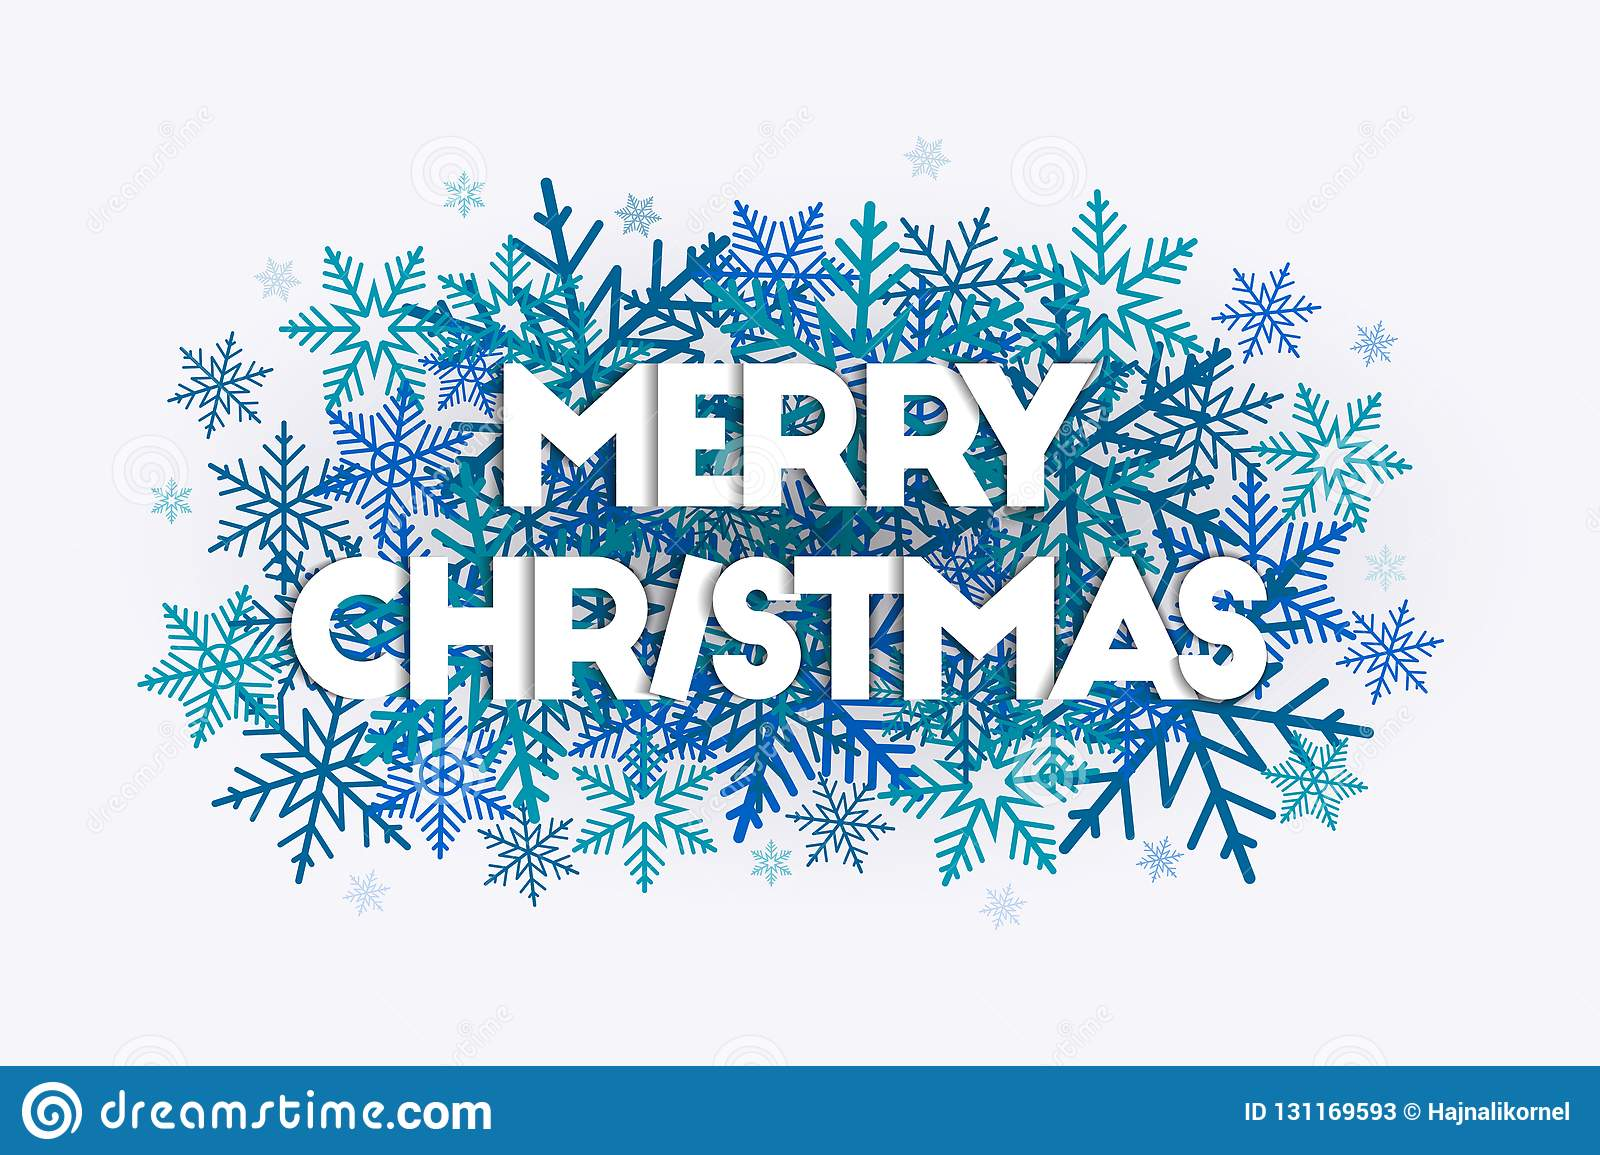 Merry Christmas Word Art Concept With Letters Laying On